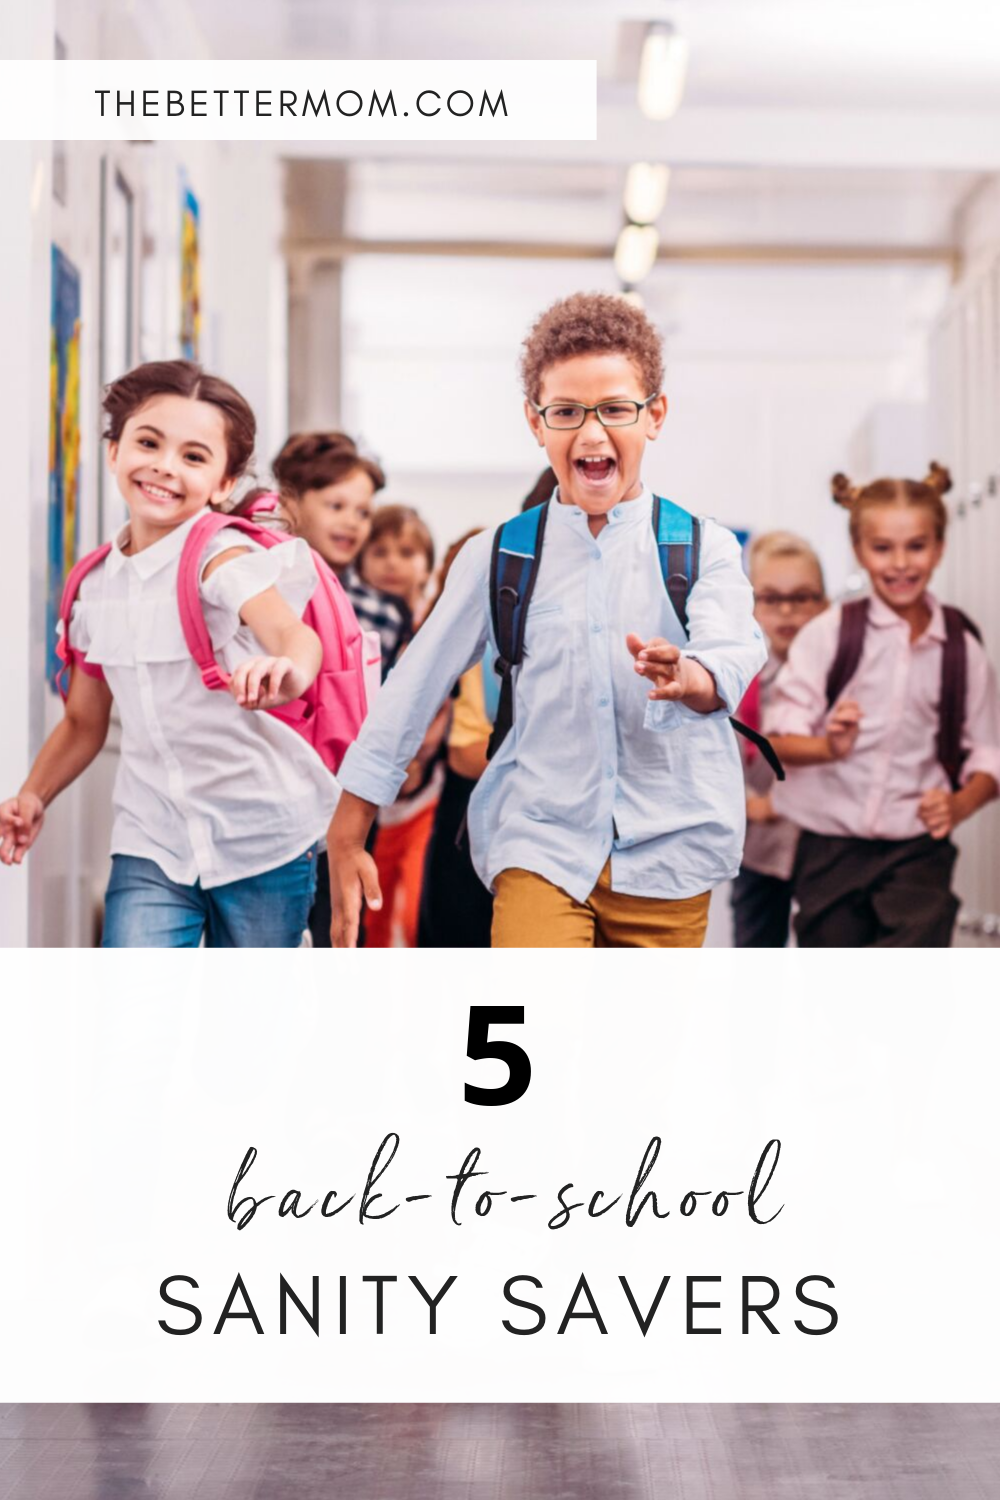 How are you stretching into this new school year, moms? Whether you've already started or you are getting ready to make the transition back to school, these practical tips will help to keep your sanity intact during this season of change!